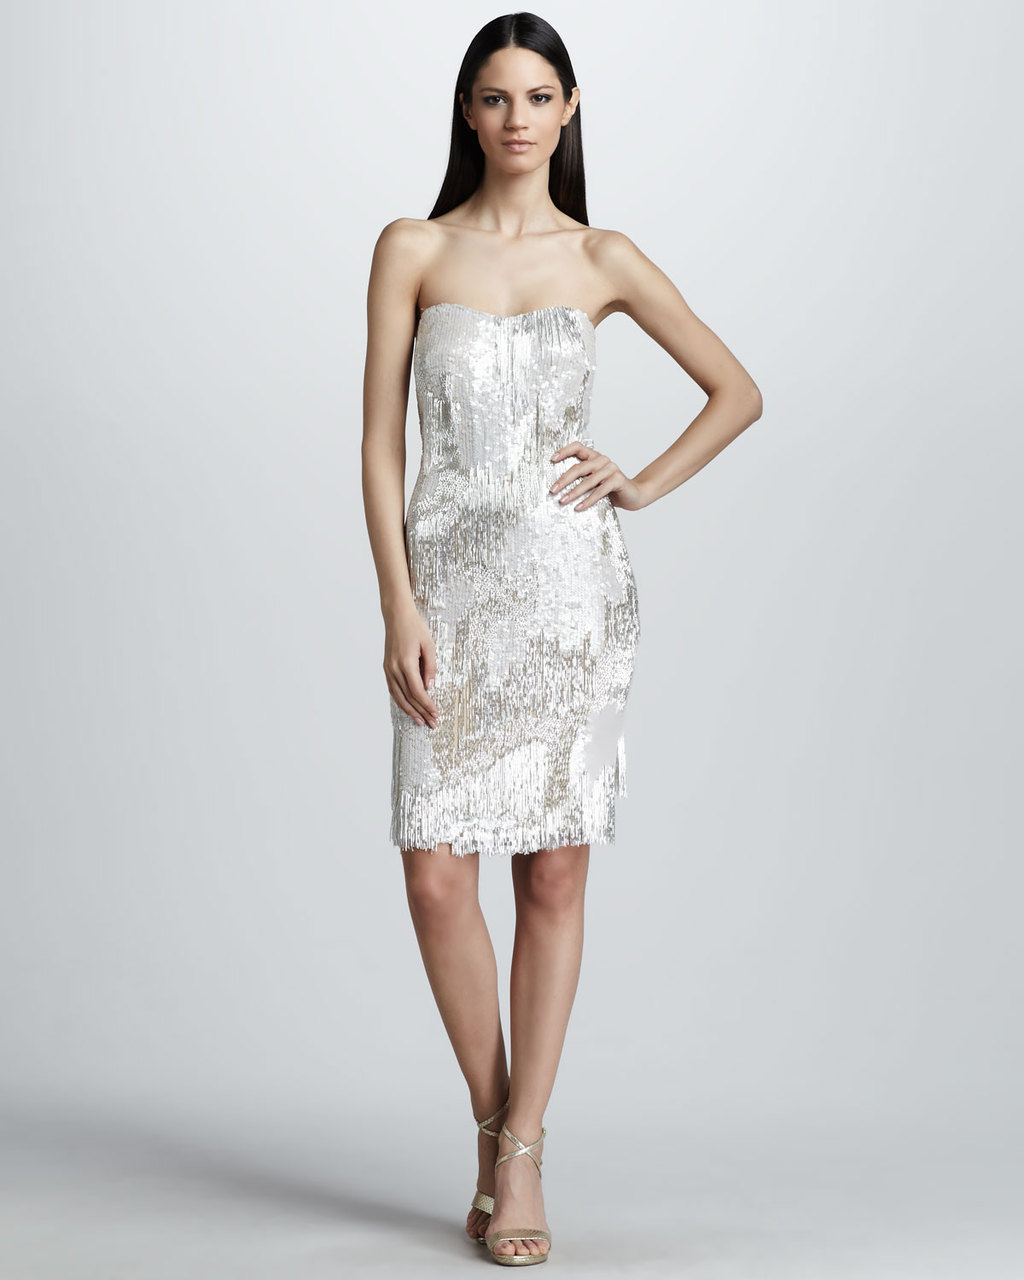 wedding splurge top 10 for fall 2012 Mandalay LWD